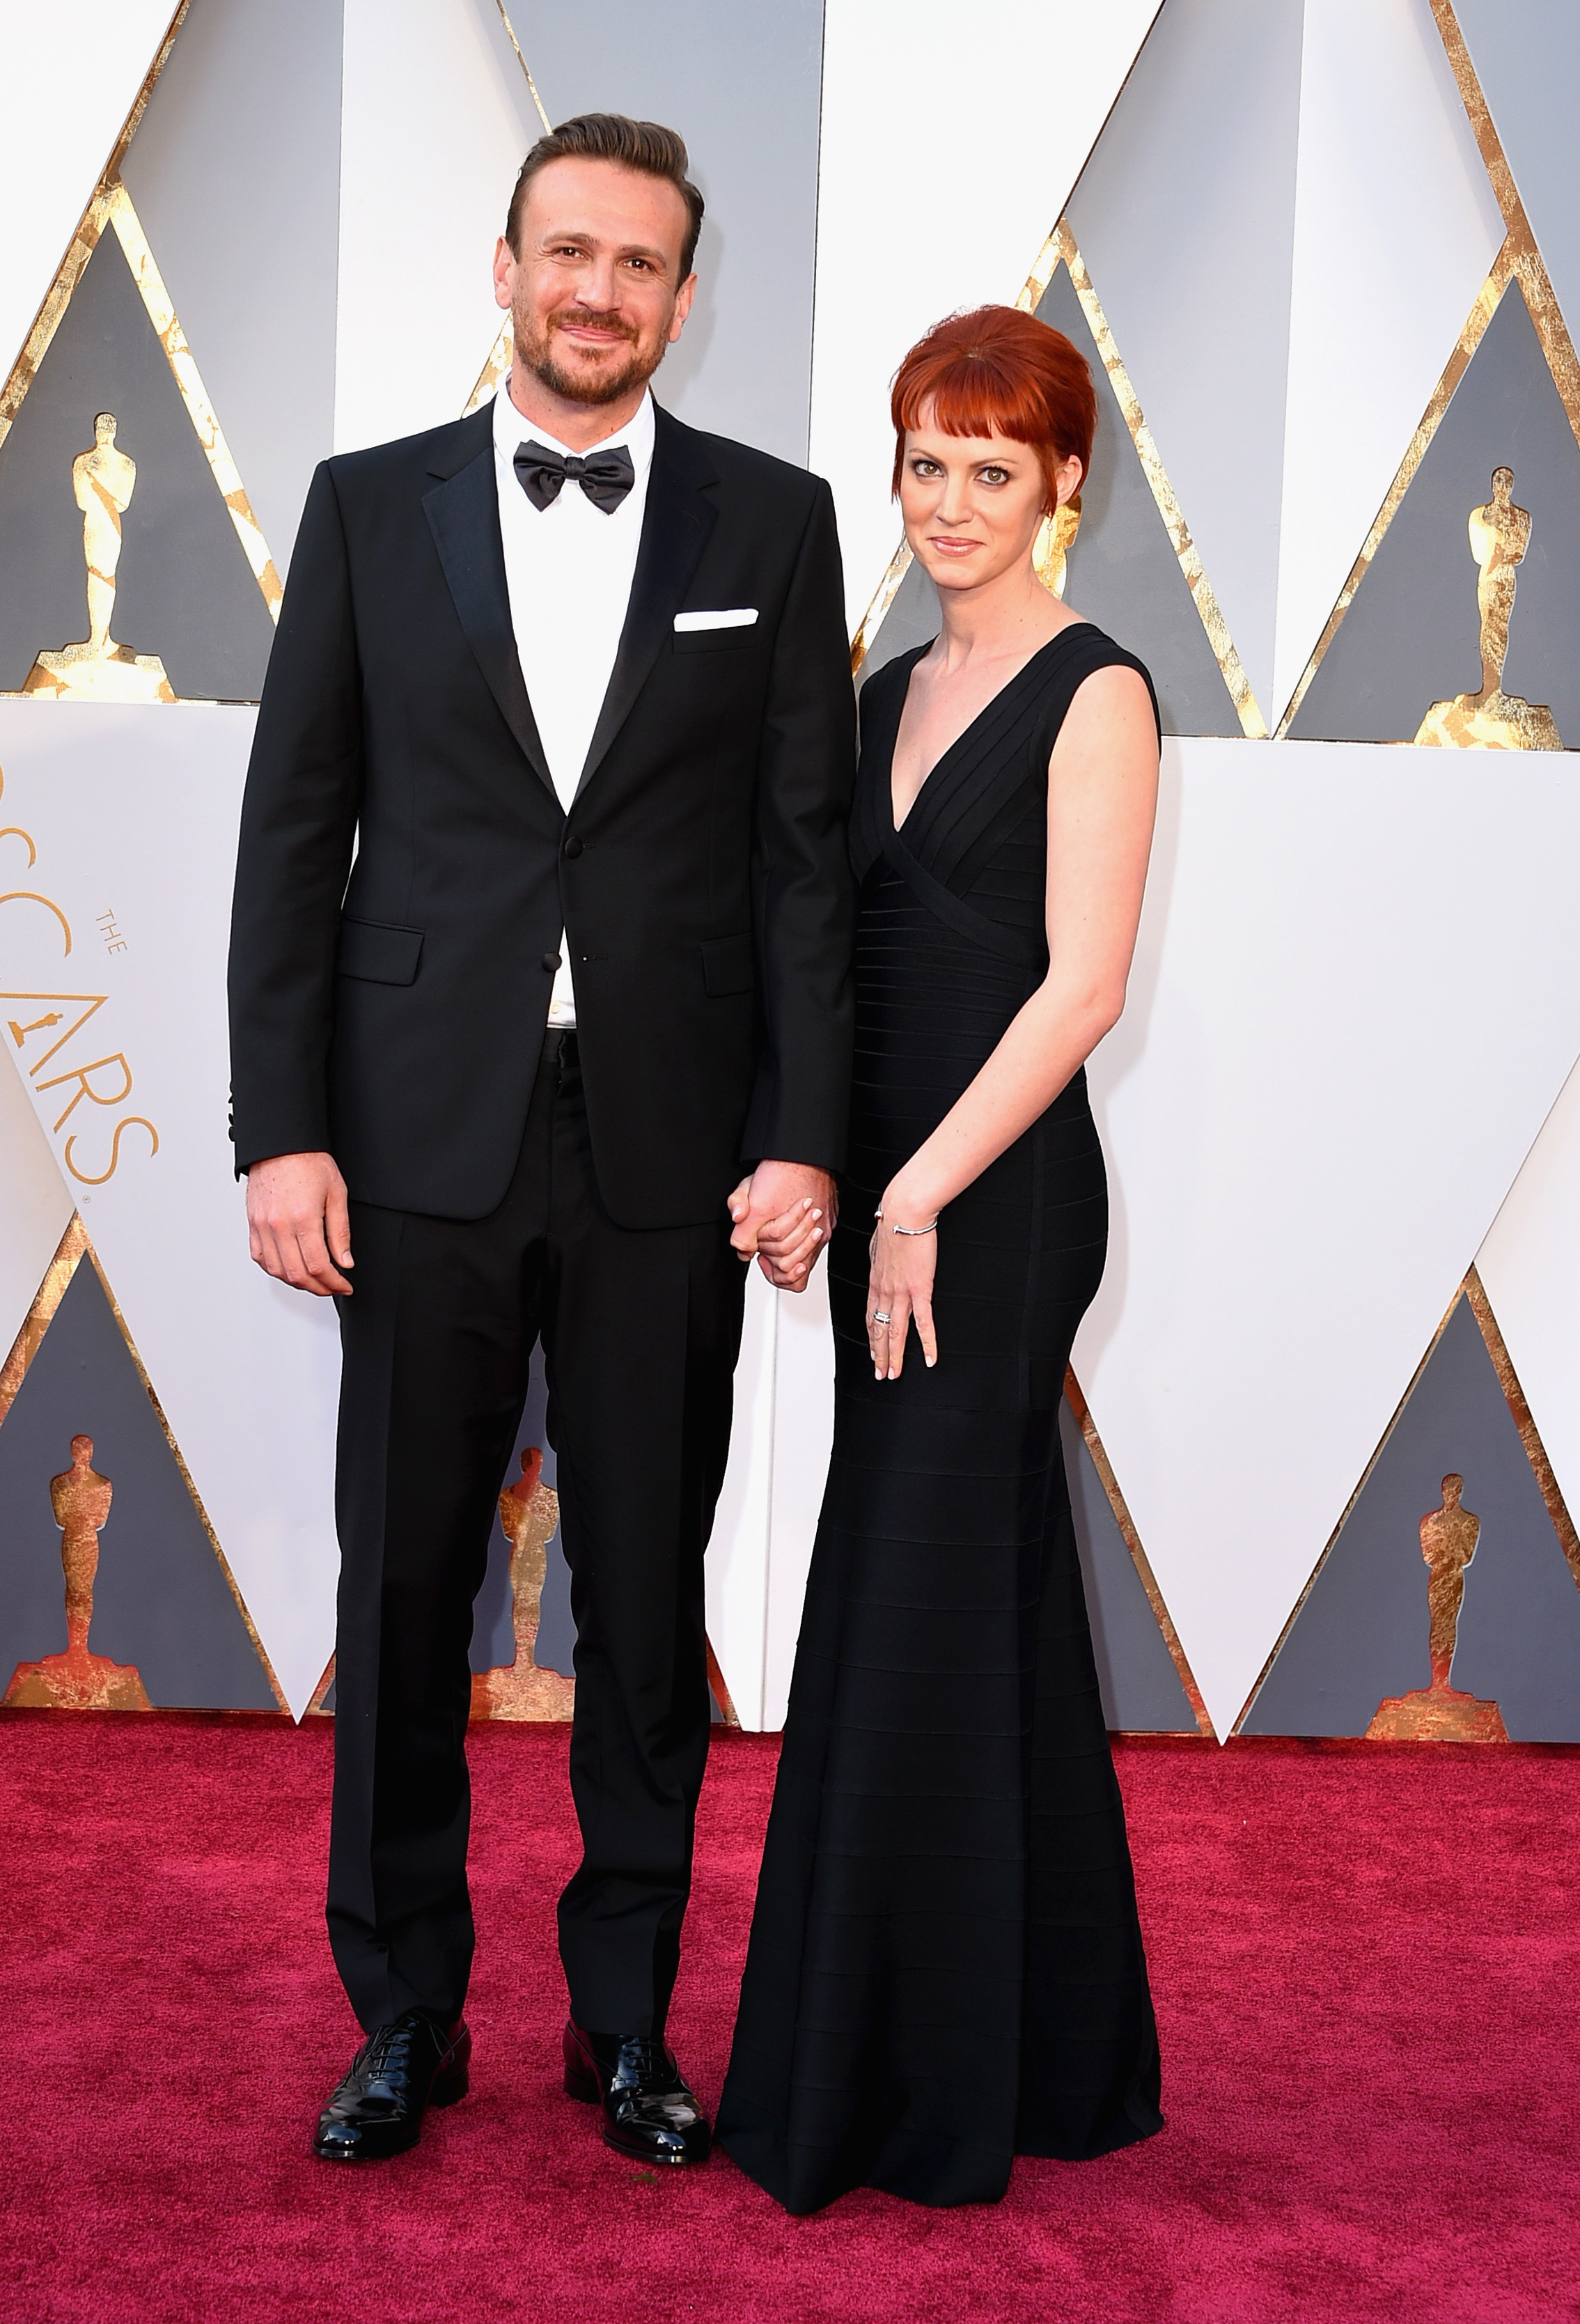 Jason Segel and Alexis Mixter attend the 88th Annual Academy Awards on Feb. 28, 2016 in Hollywood, Calif.